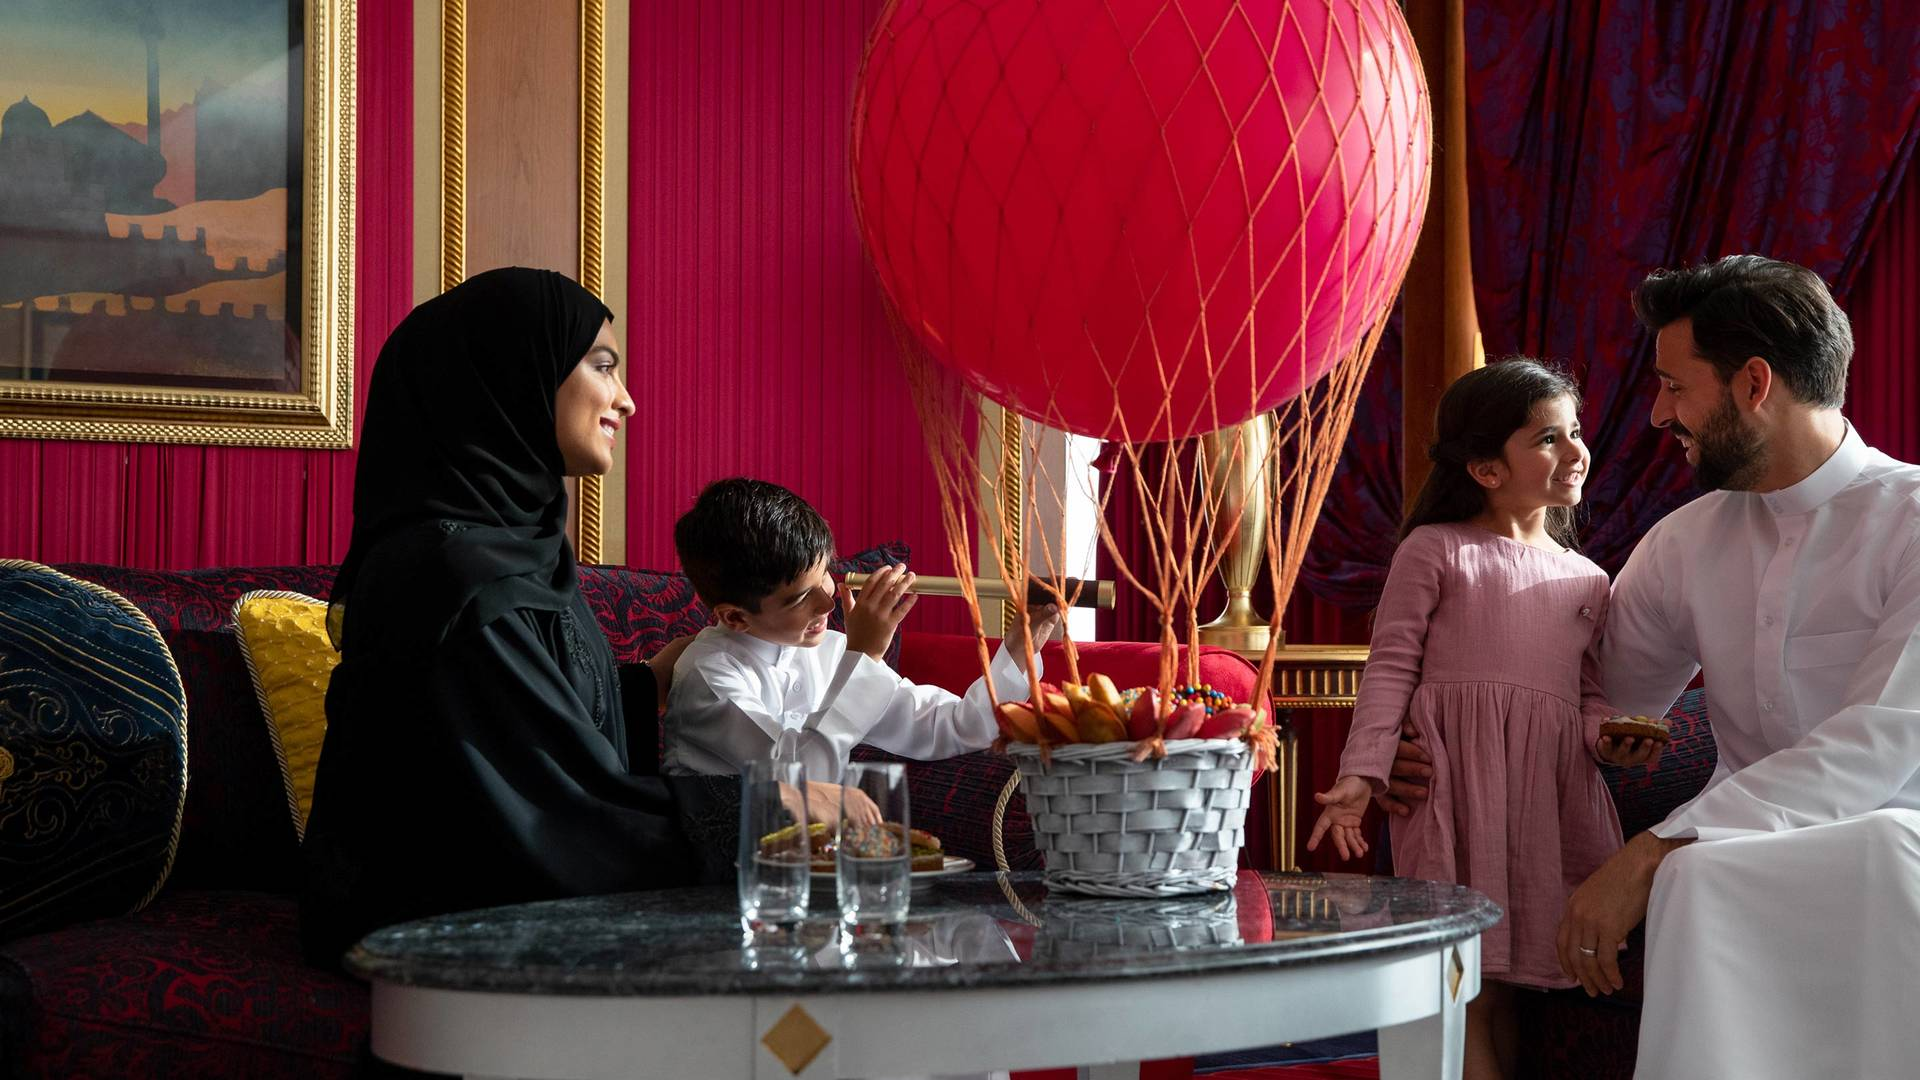 Jumeirah Burj Al Arab Two bedroom family suite Saudi Family_16-9